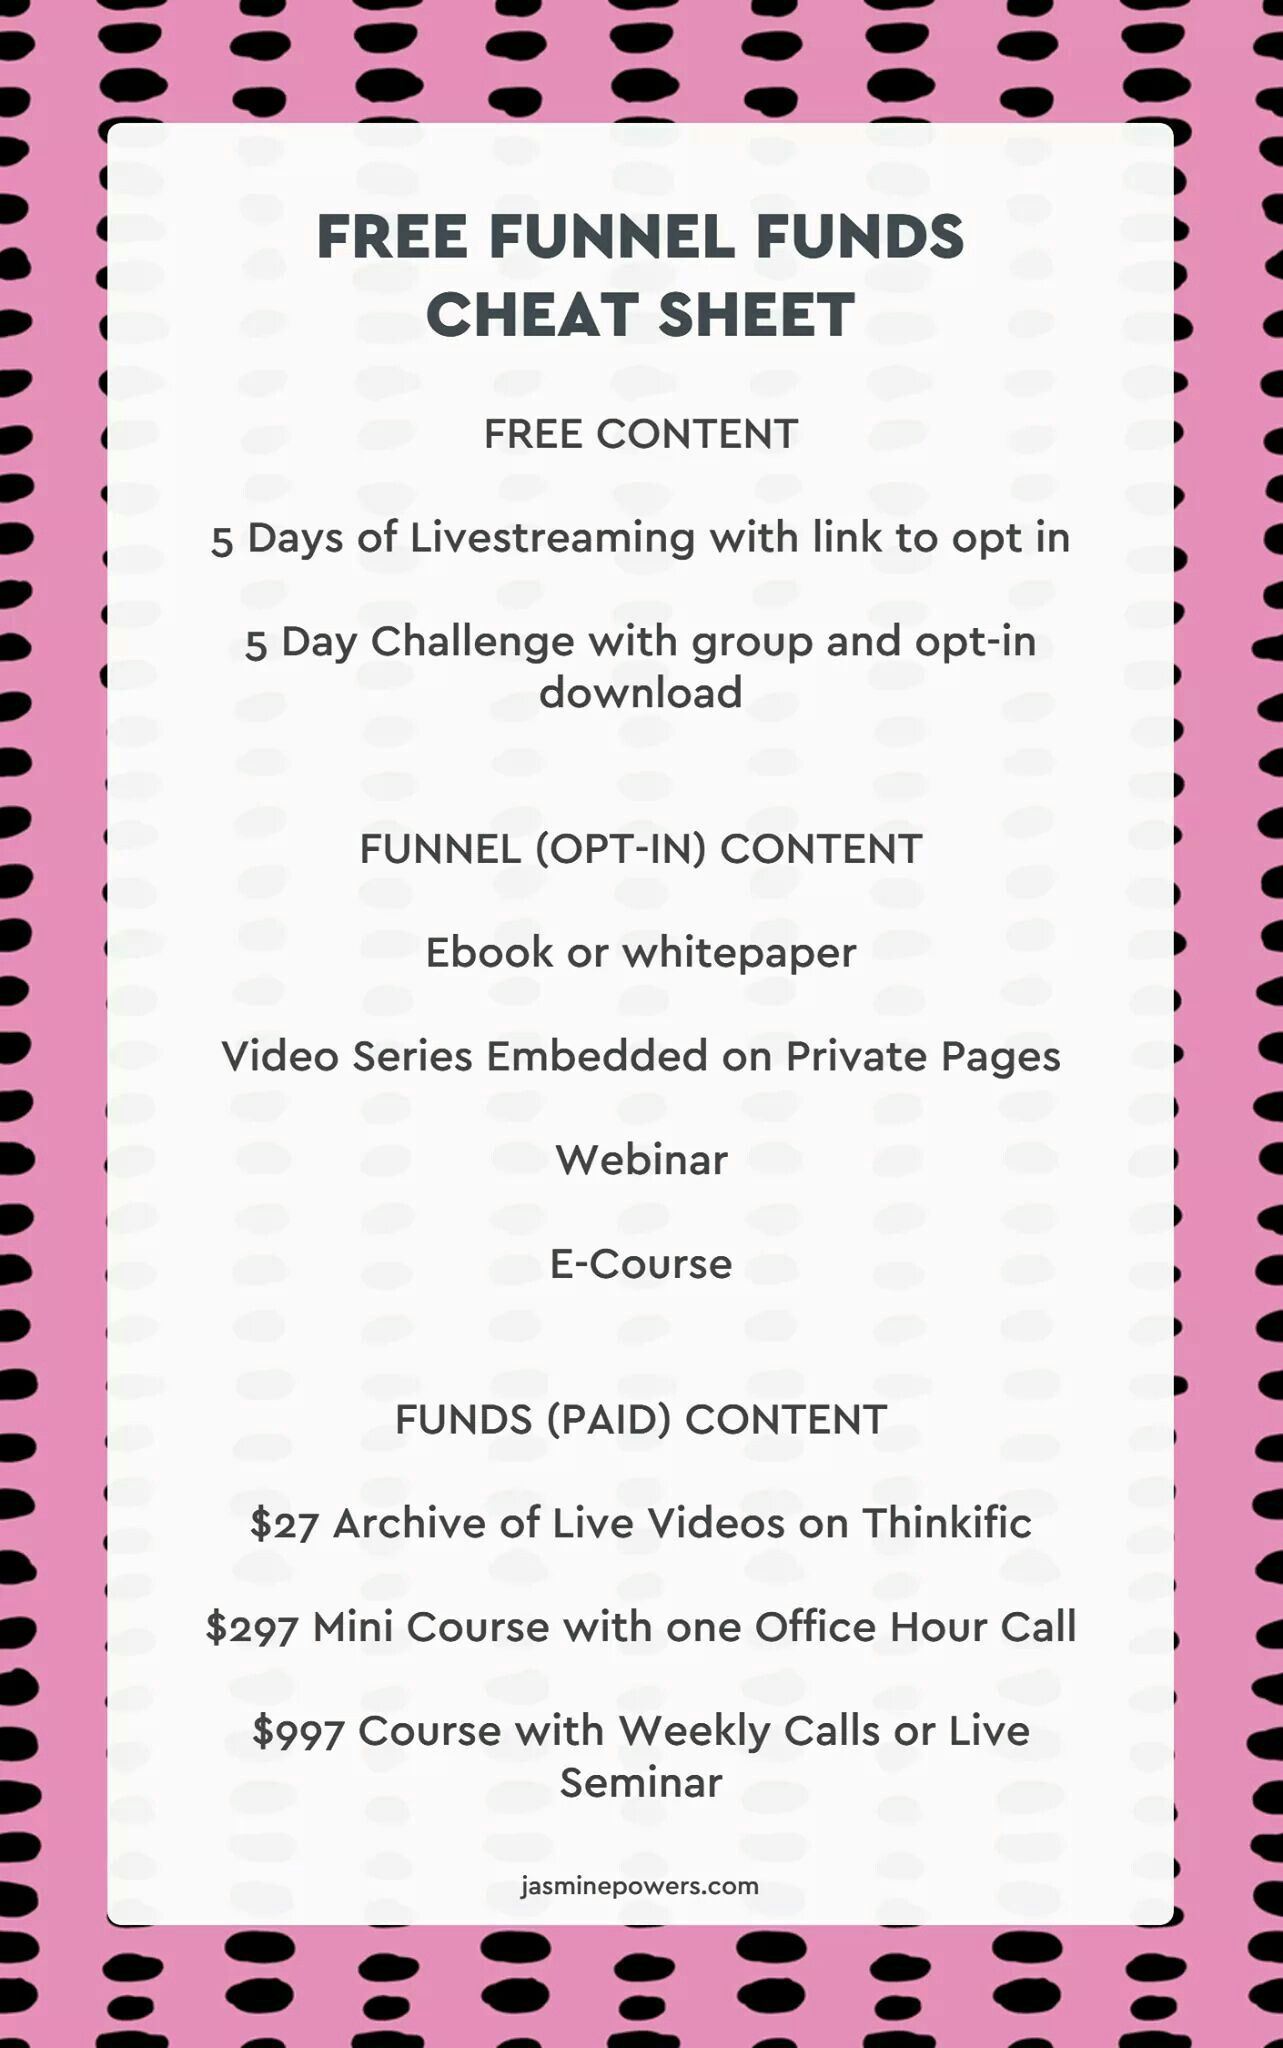 Grab The Free Funnel Funds Cheat Sheet And Worksheet